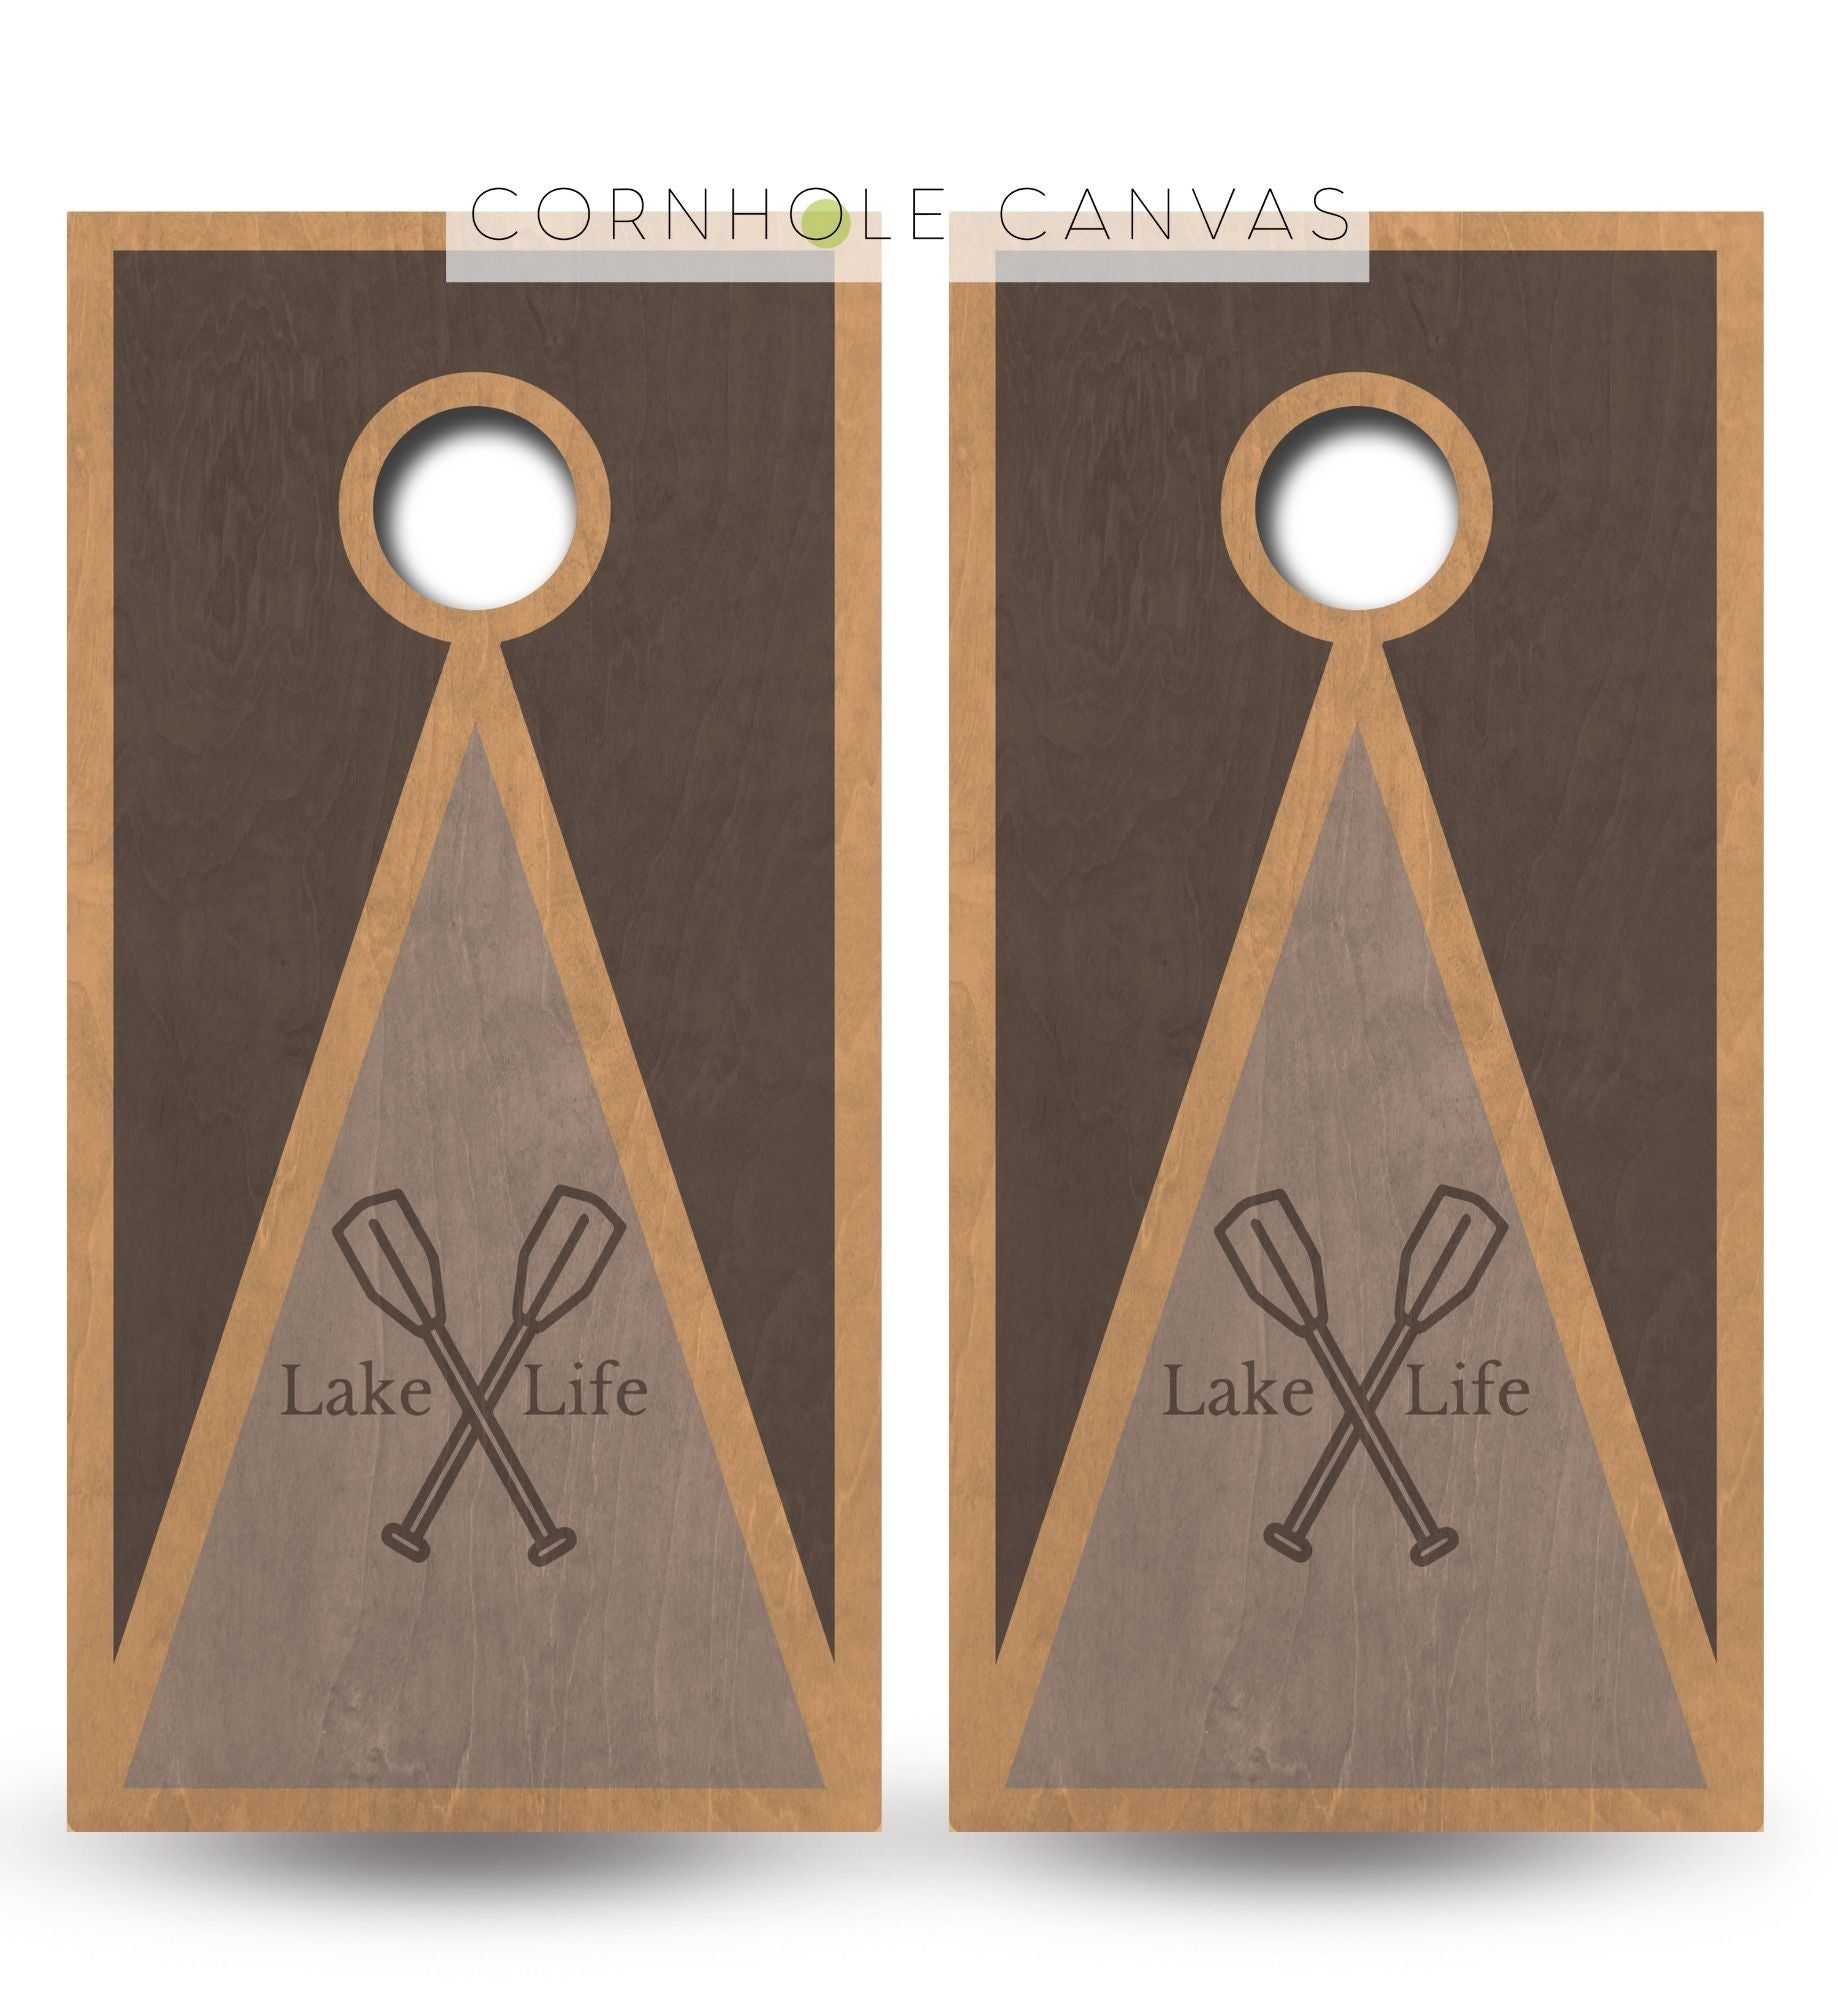 Regulation lake theme cornhole boards. Customizable premium quality cornhole set.